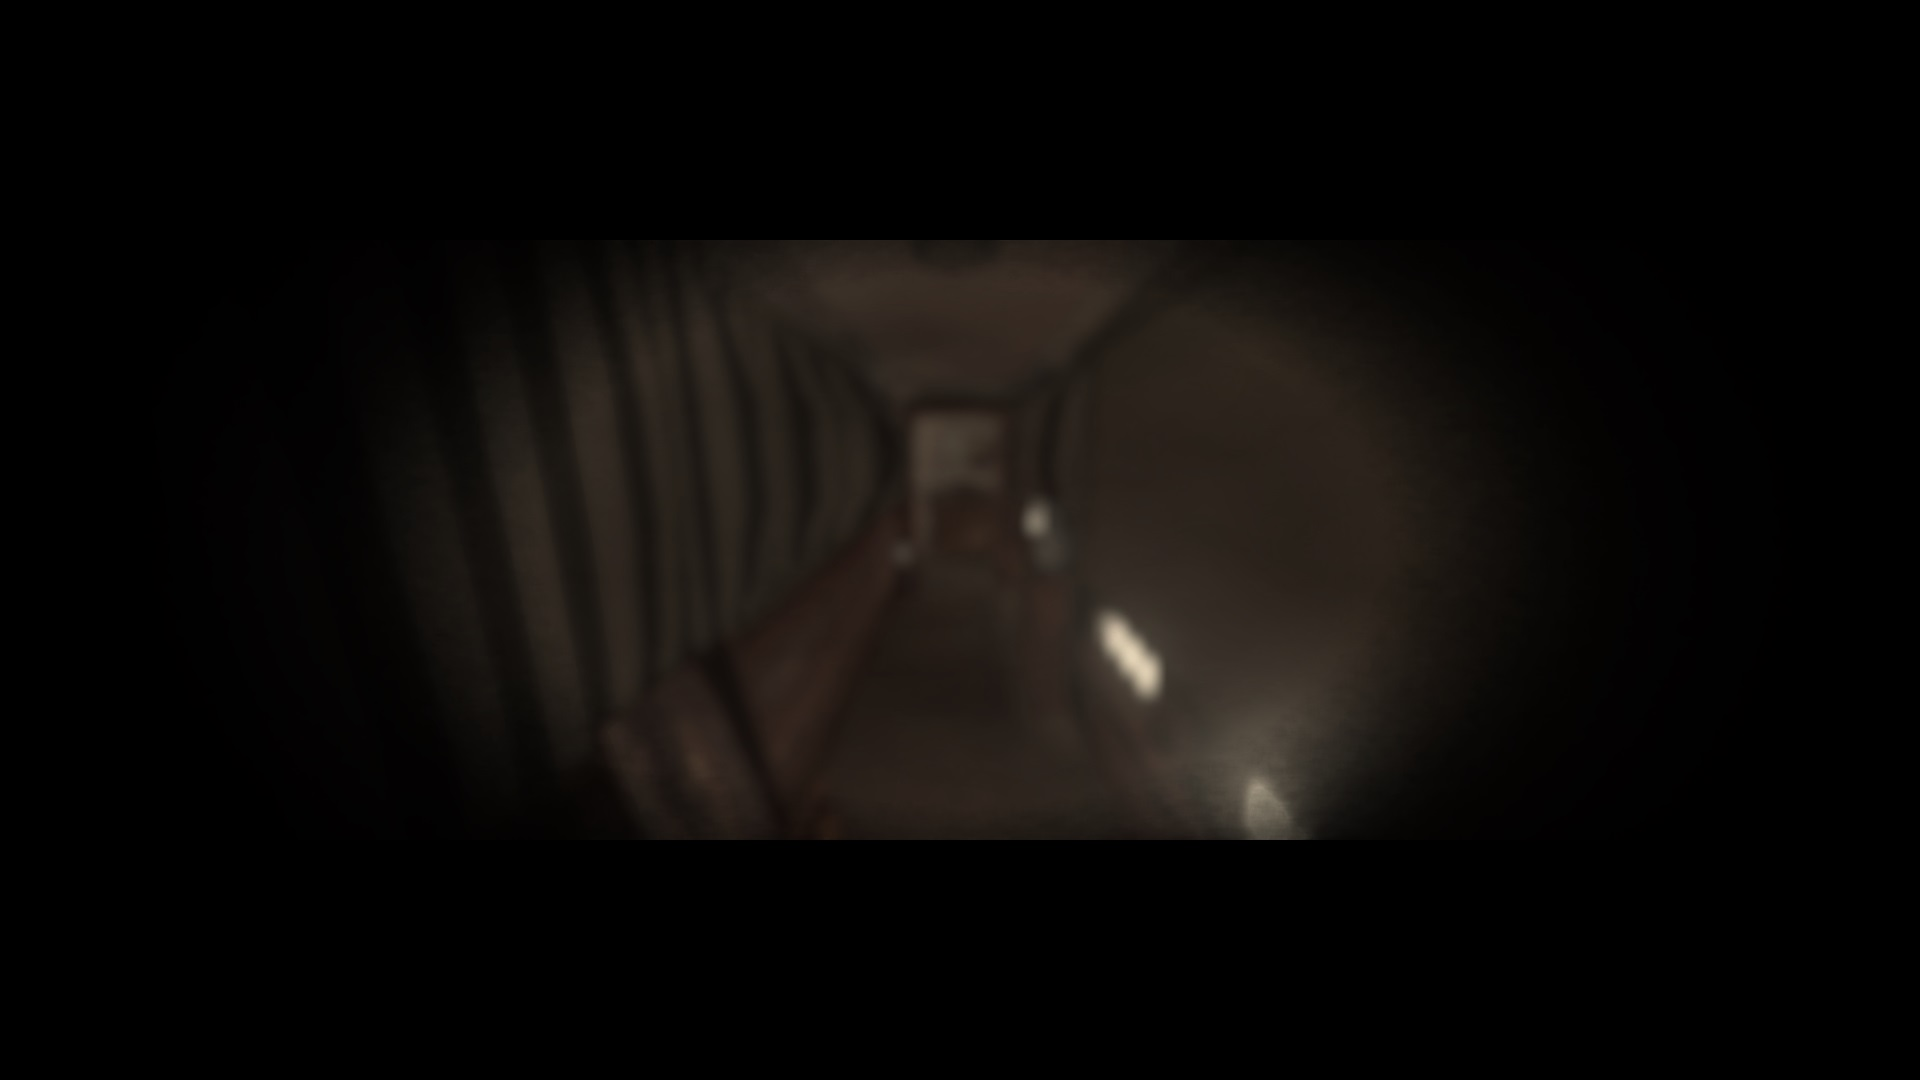 Hallway effects on